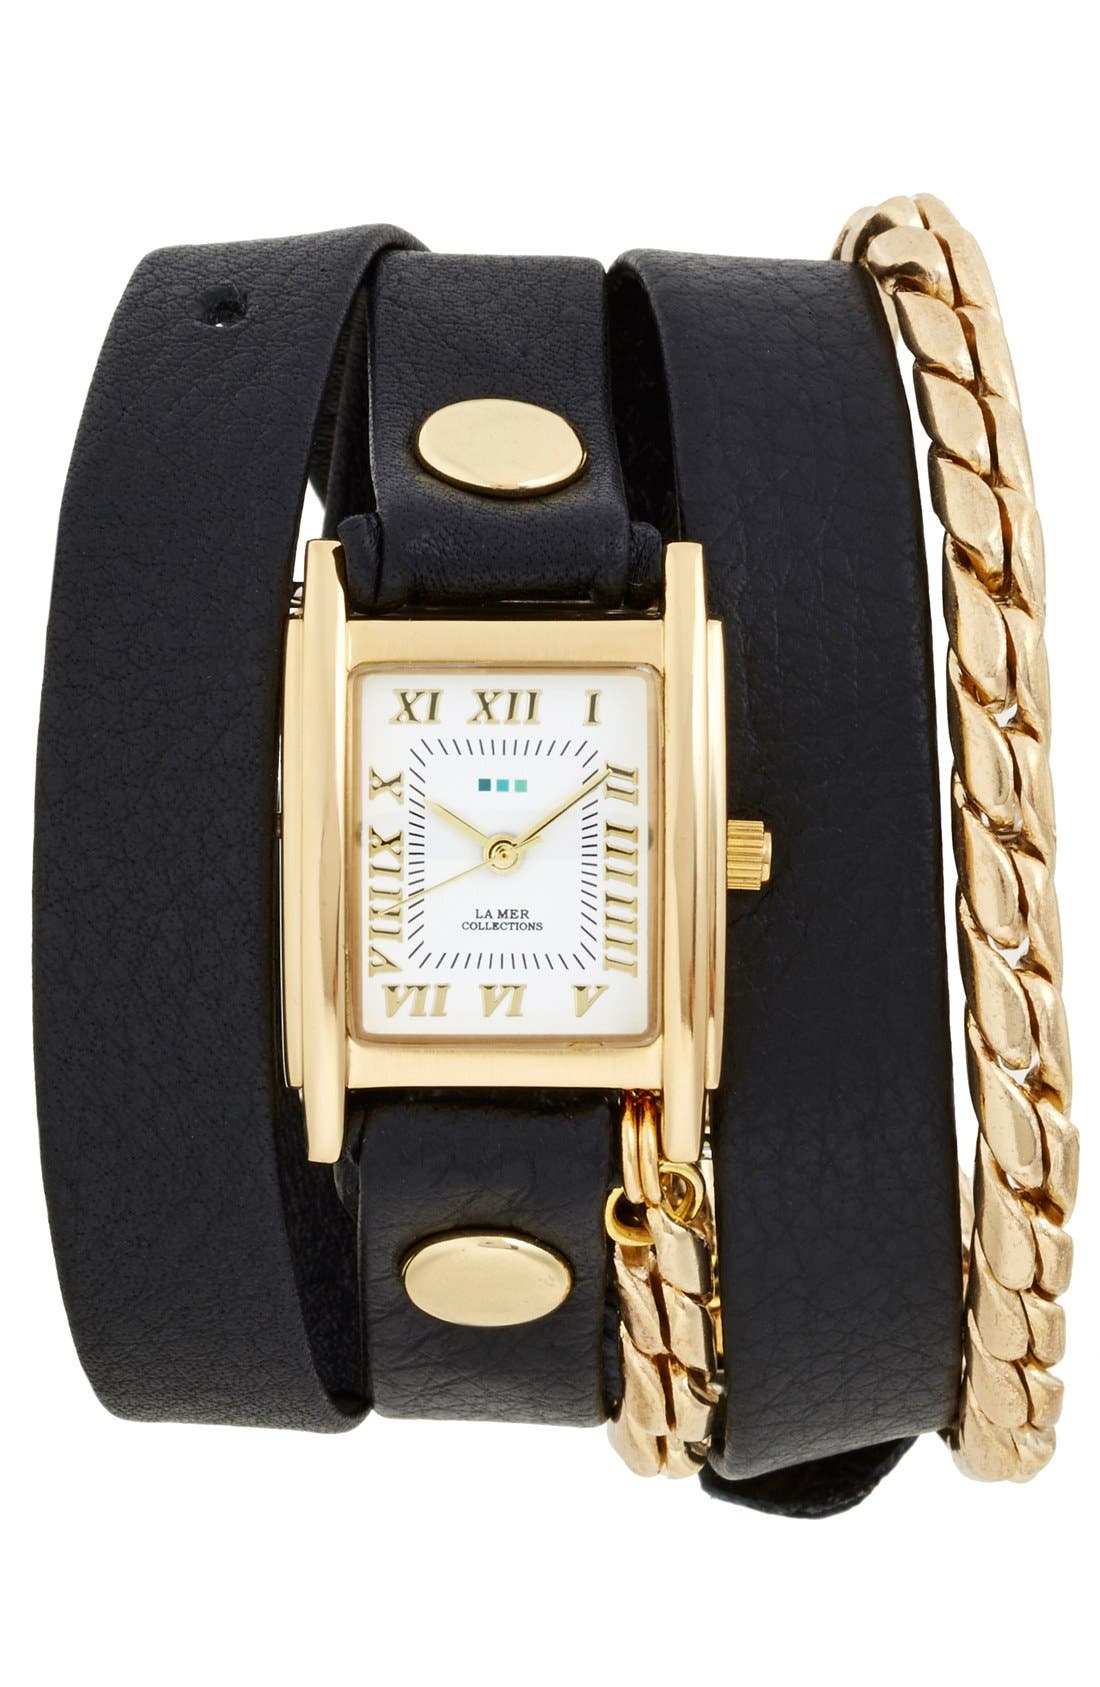 La Mer Collections Leather & Chain Wrap Watch, 19mm